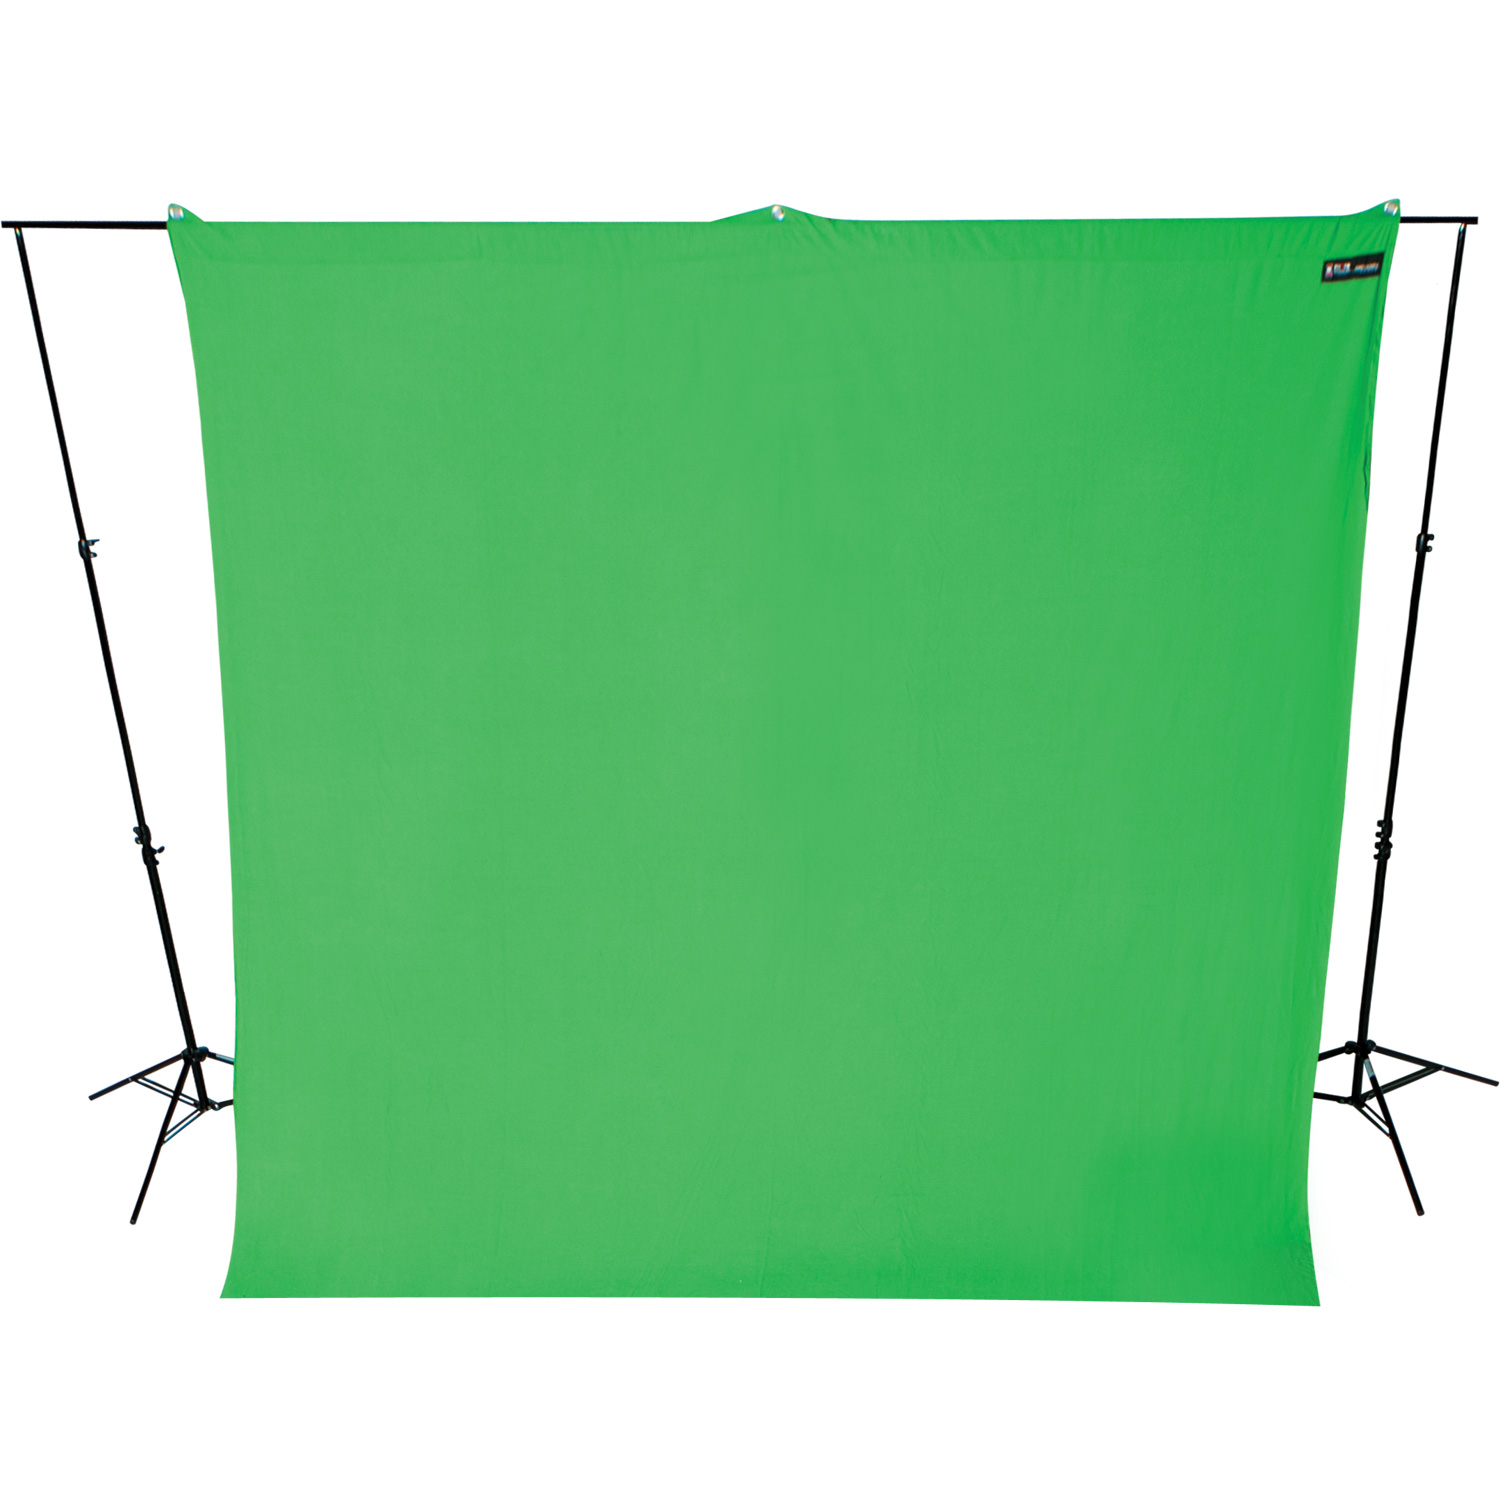 9' x 10' Wrinkle-resistant Green Screen Background